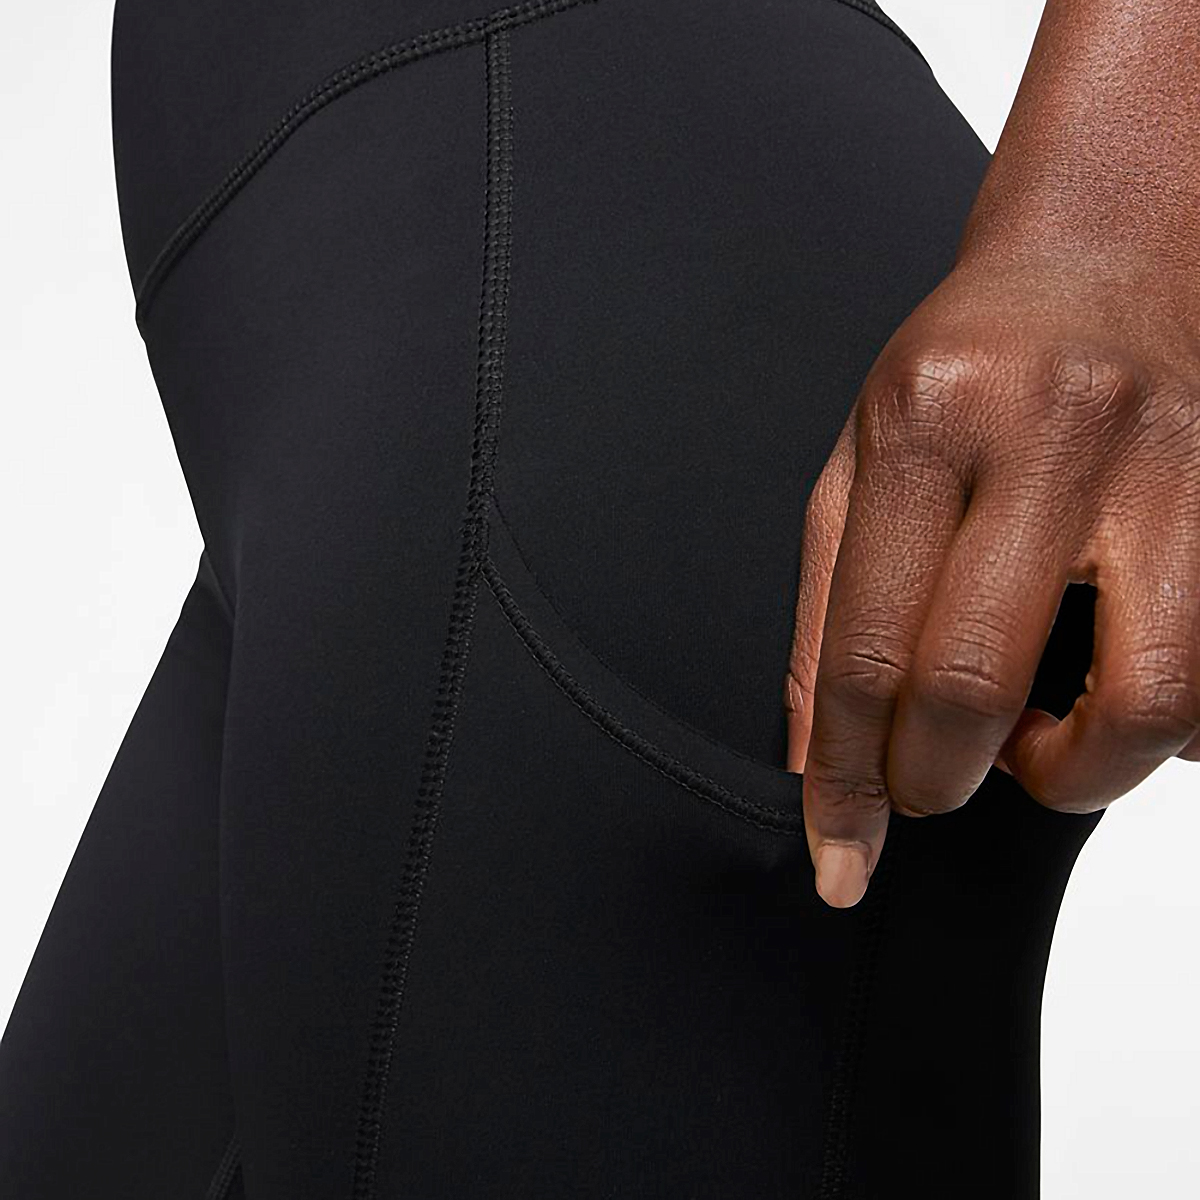 Women's Nike Epic Luxe Repel Tight  - Color: Black - Size: XS, Black, large, image 3